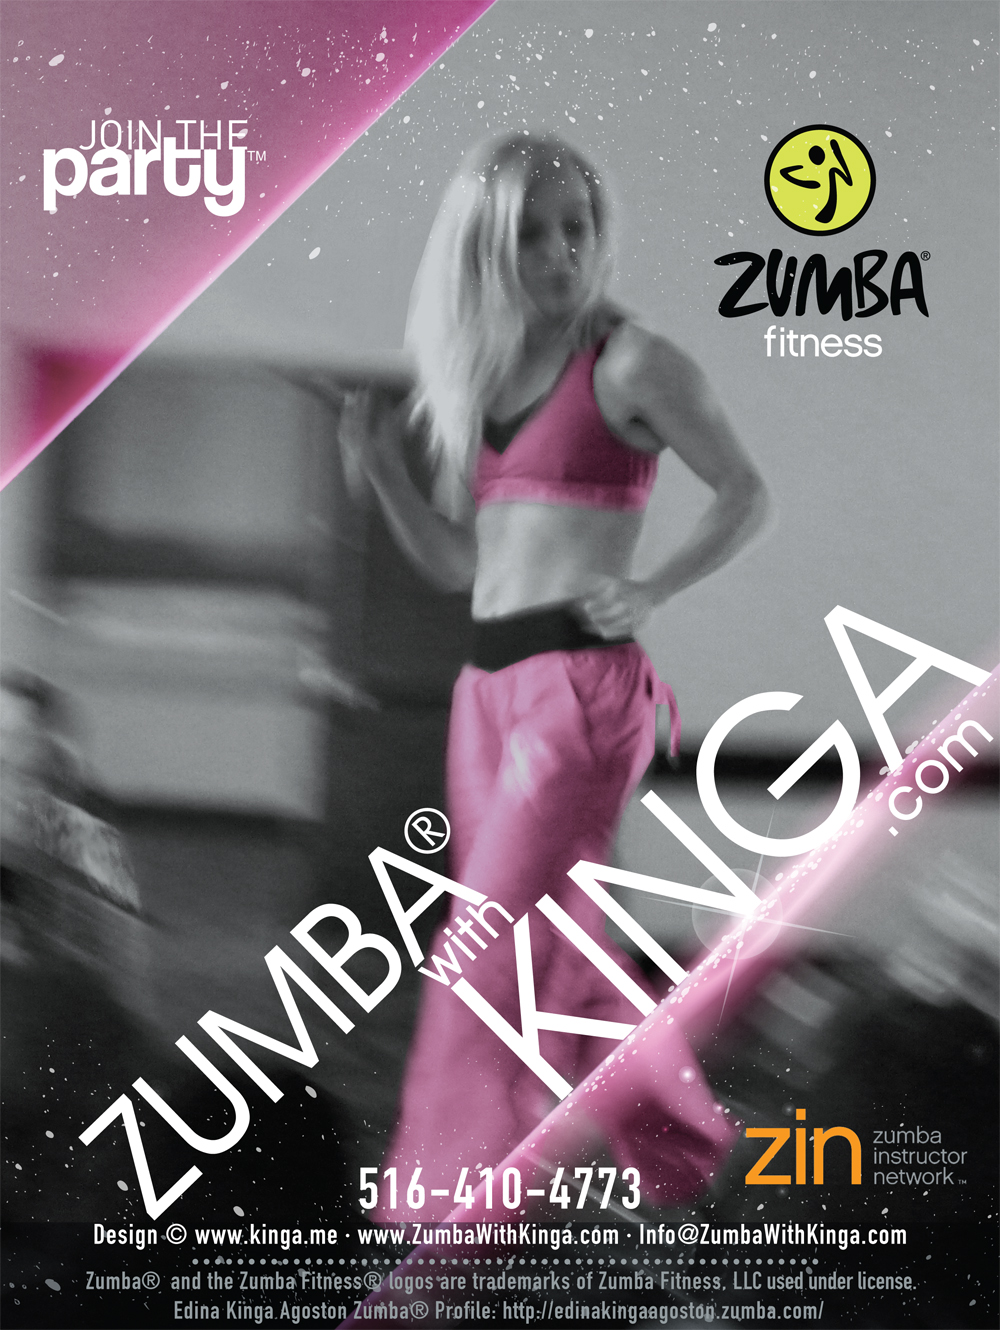 New York Zumba Dancer - European American Artist Zumba Dancer Edina Kinga Agoston